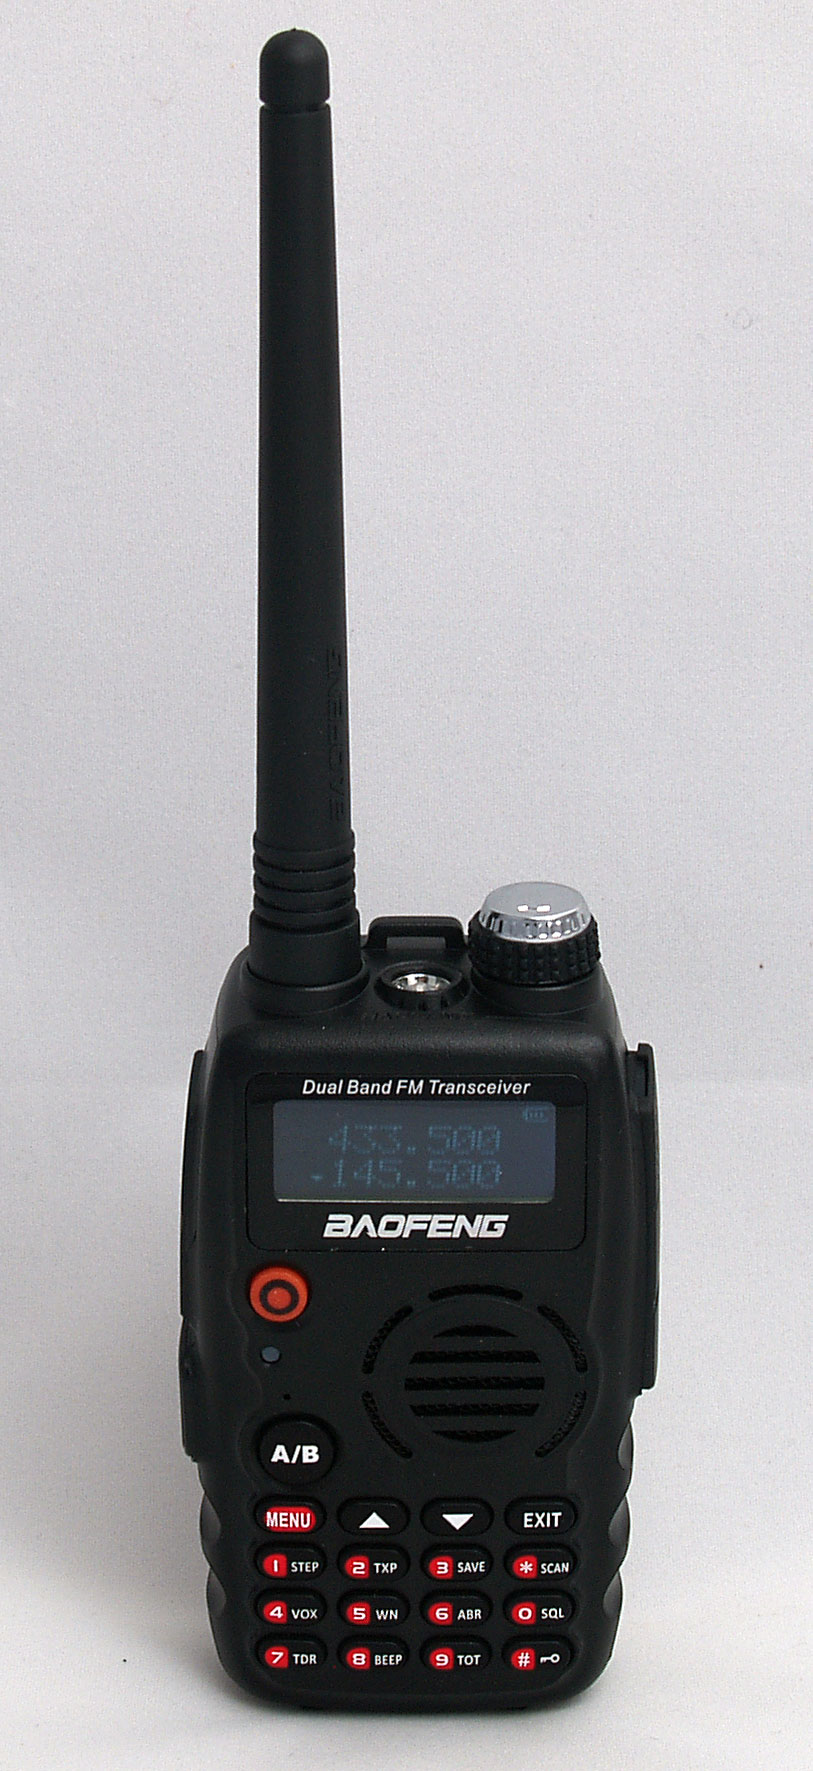 Baofeng B-580T (GT-3) 2m/70cm dualband handheld transceiver with dual frequency display